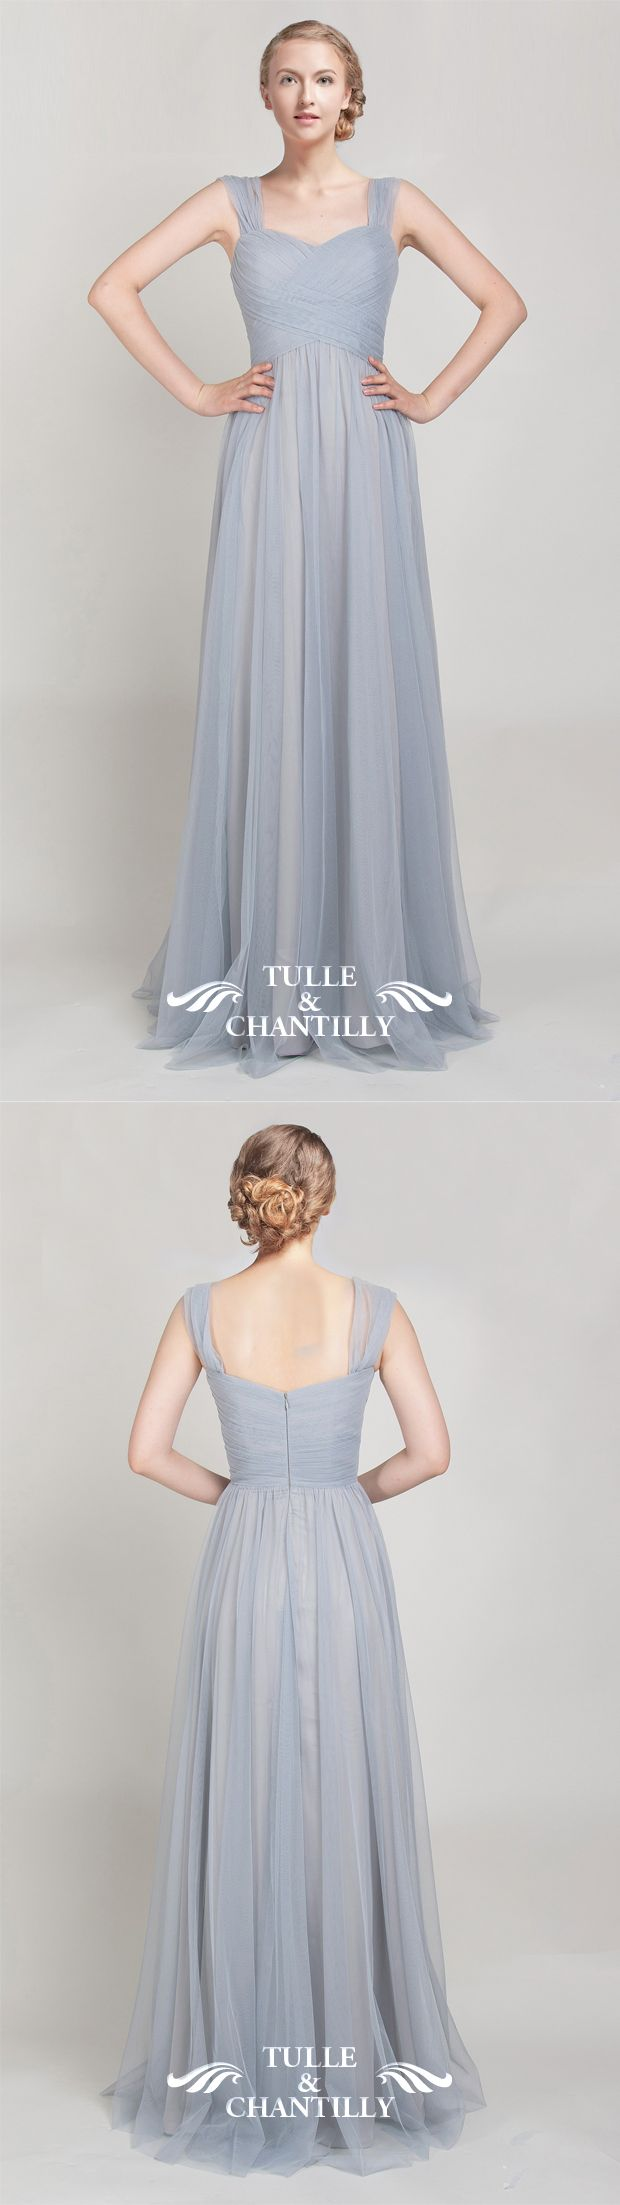 Best 25 grey bridesmaid long ideas on pinterest grey bridesmaid long off shoulder tulle bridesmaid dress tbqp328 ombrellifo Image collections